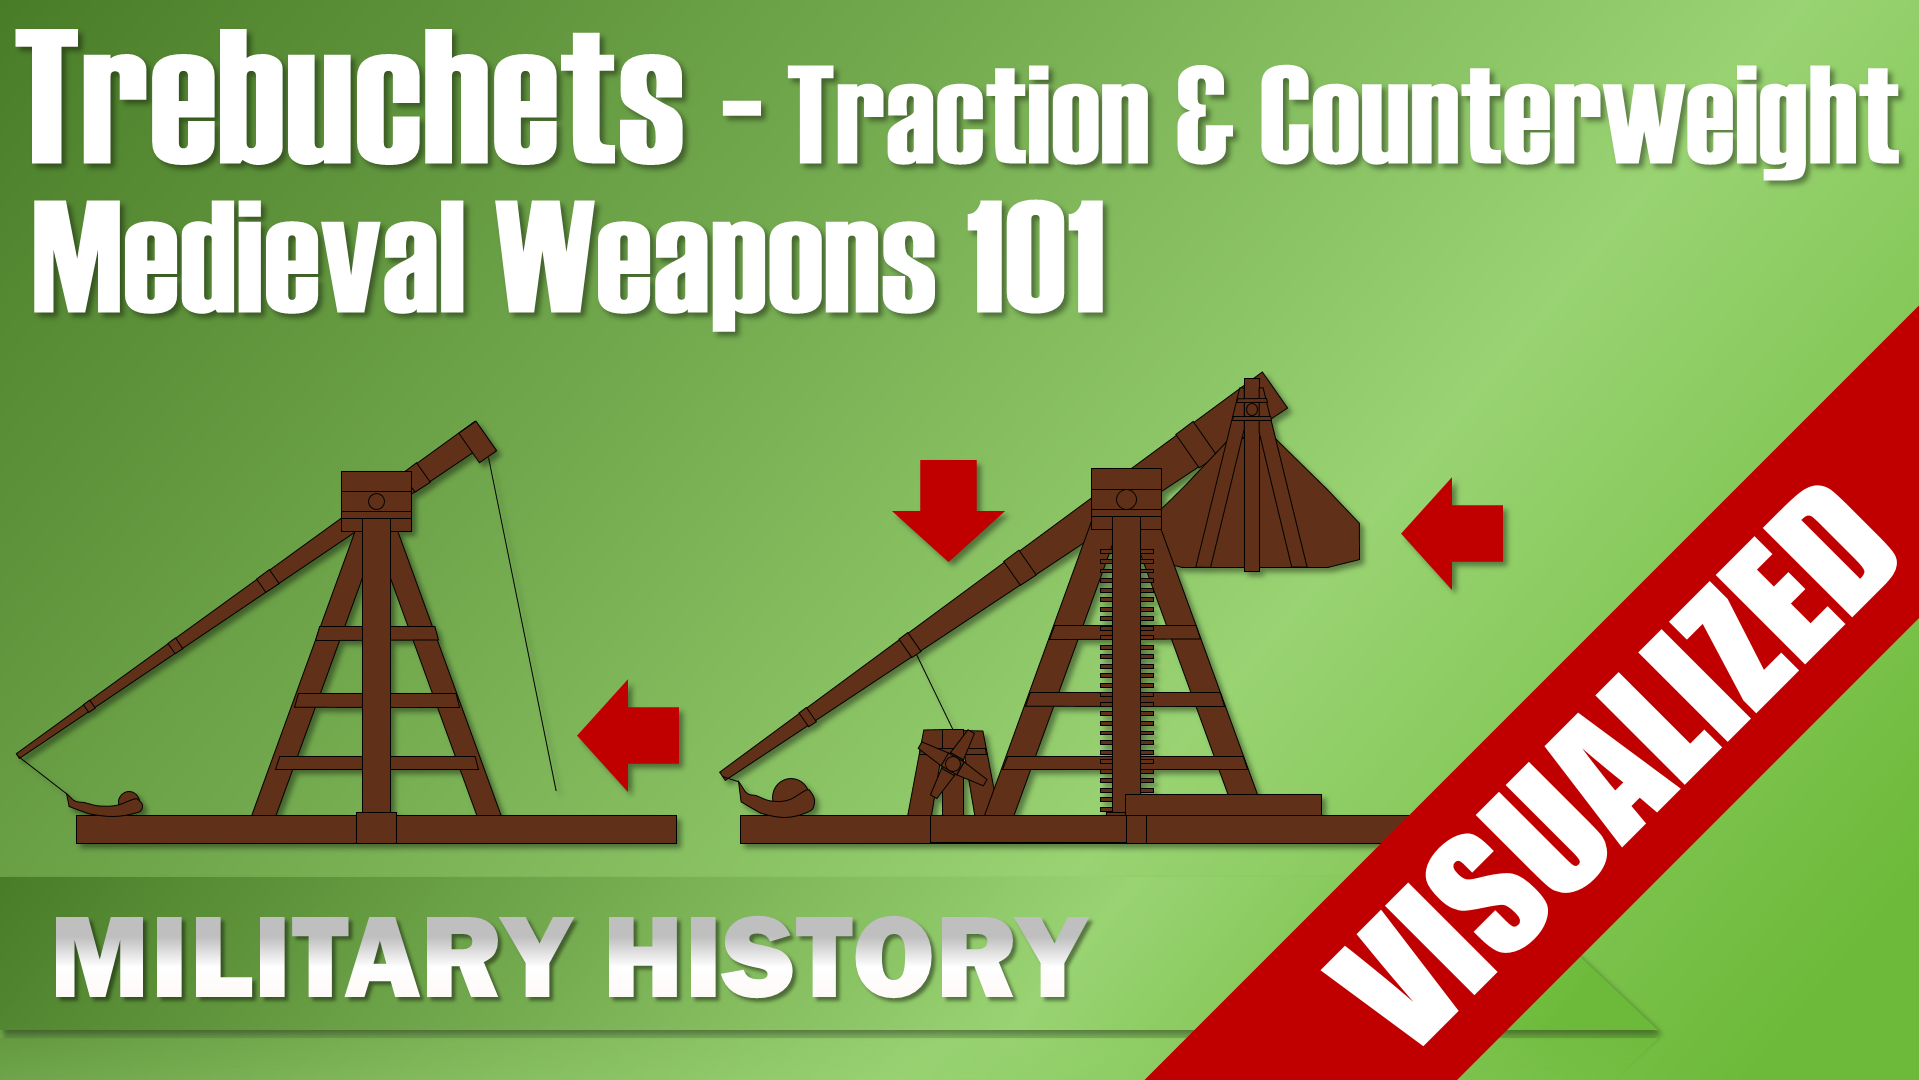 Trebuchets Traction Counterweight Medieal Weapons 101